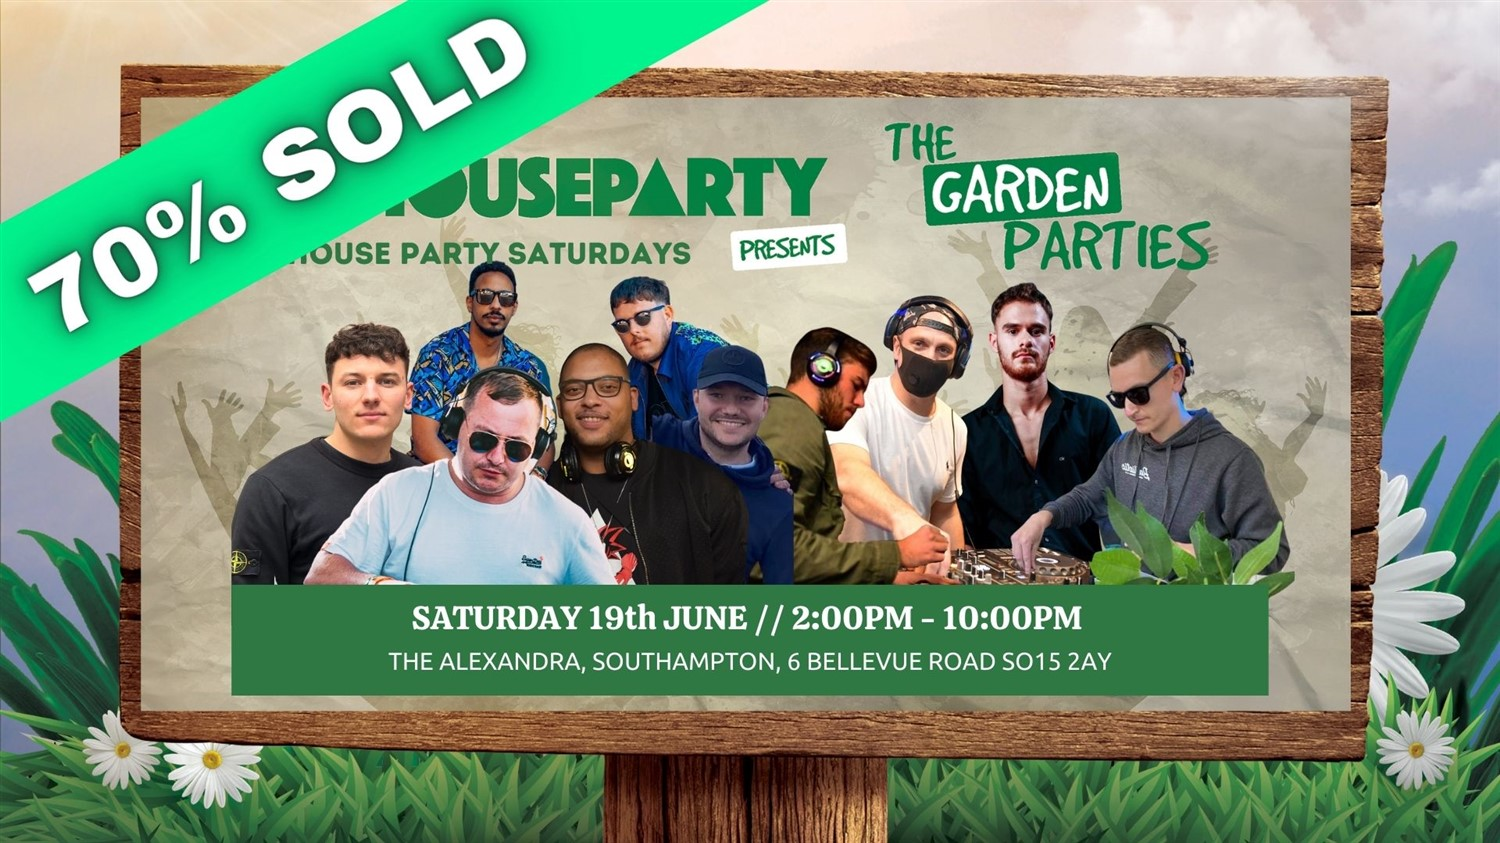 House Party The Southampton Garden Party  on Jun 19, 14:00@The Alex - Buy tickets and Get information on House Party Europe Ltd